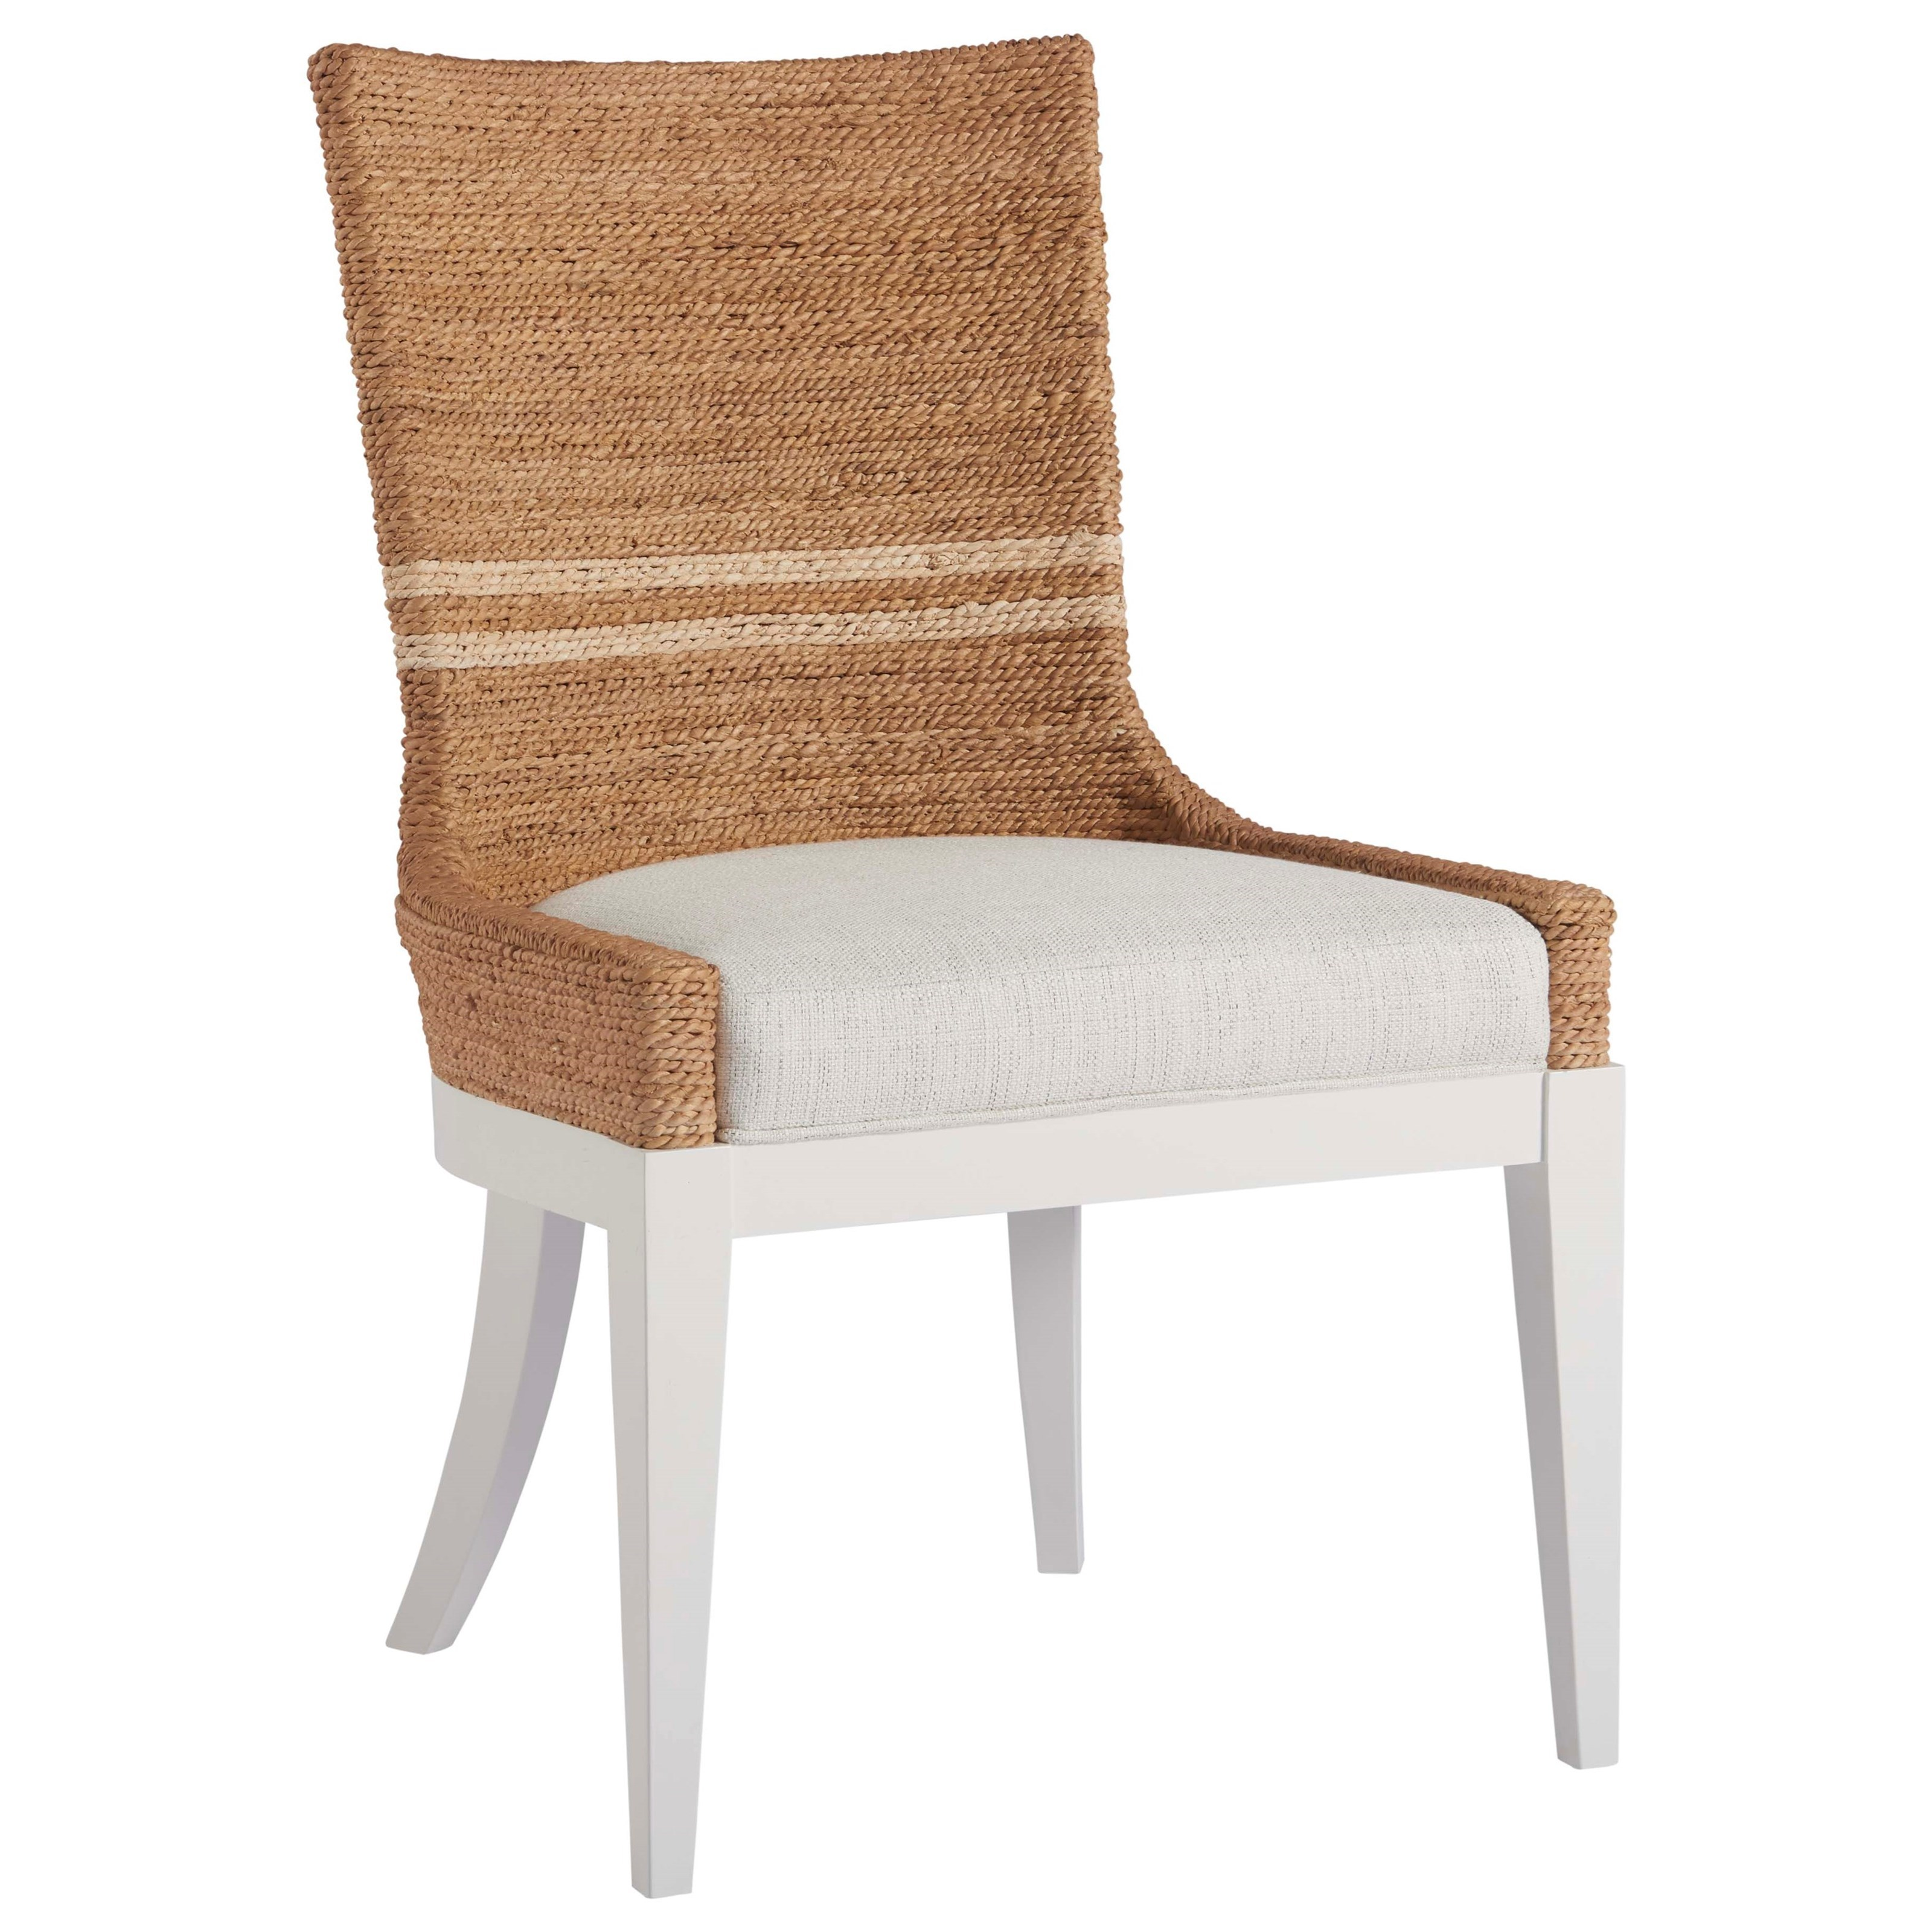 Woven Dining Chair Coastal Living Home Escape Siesta Key Dining Chair With Woven Abaca Back By Universal At Belfort Furniture